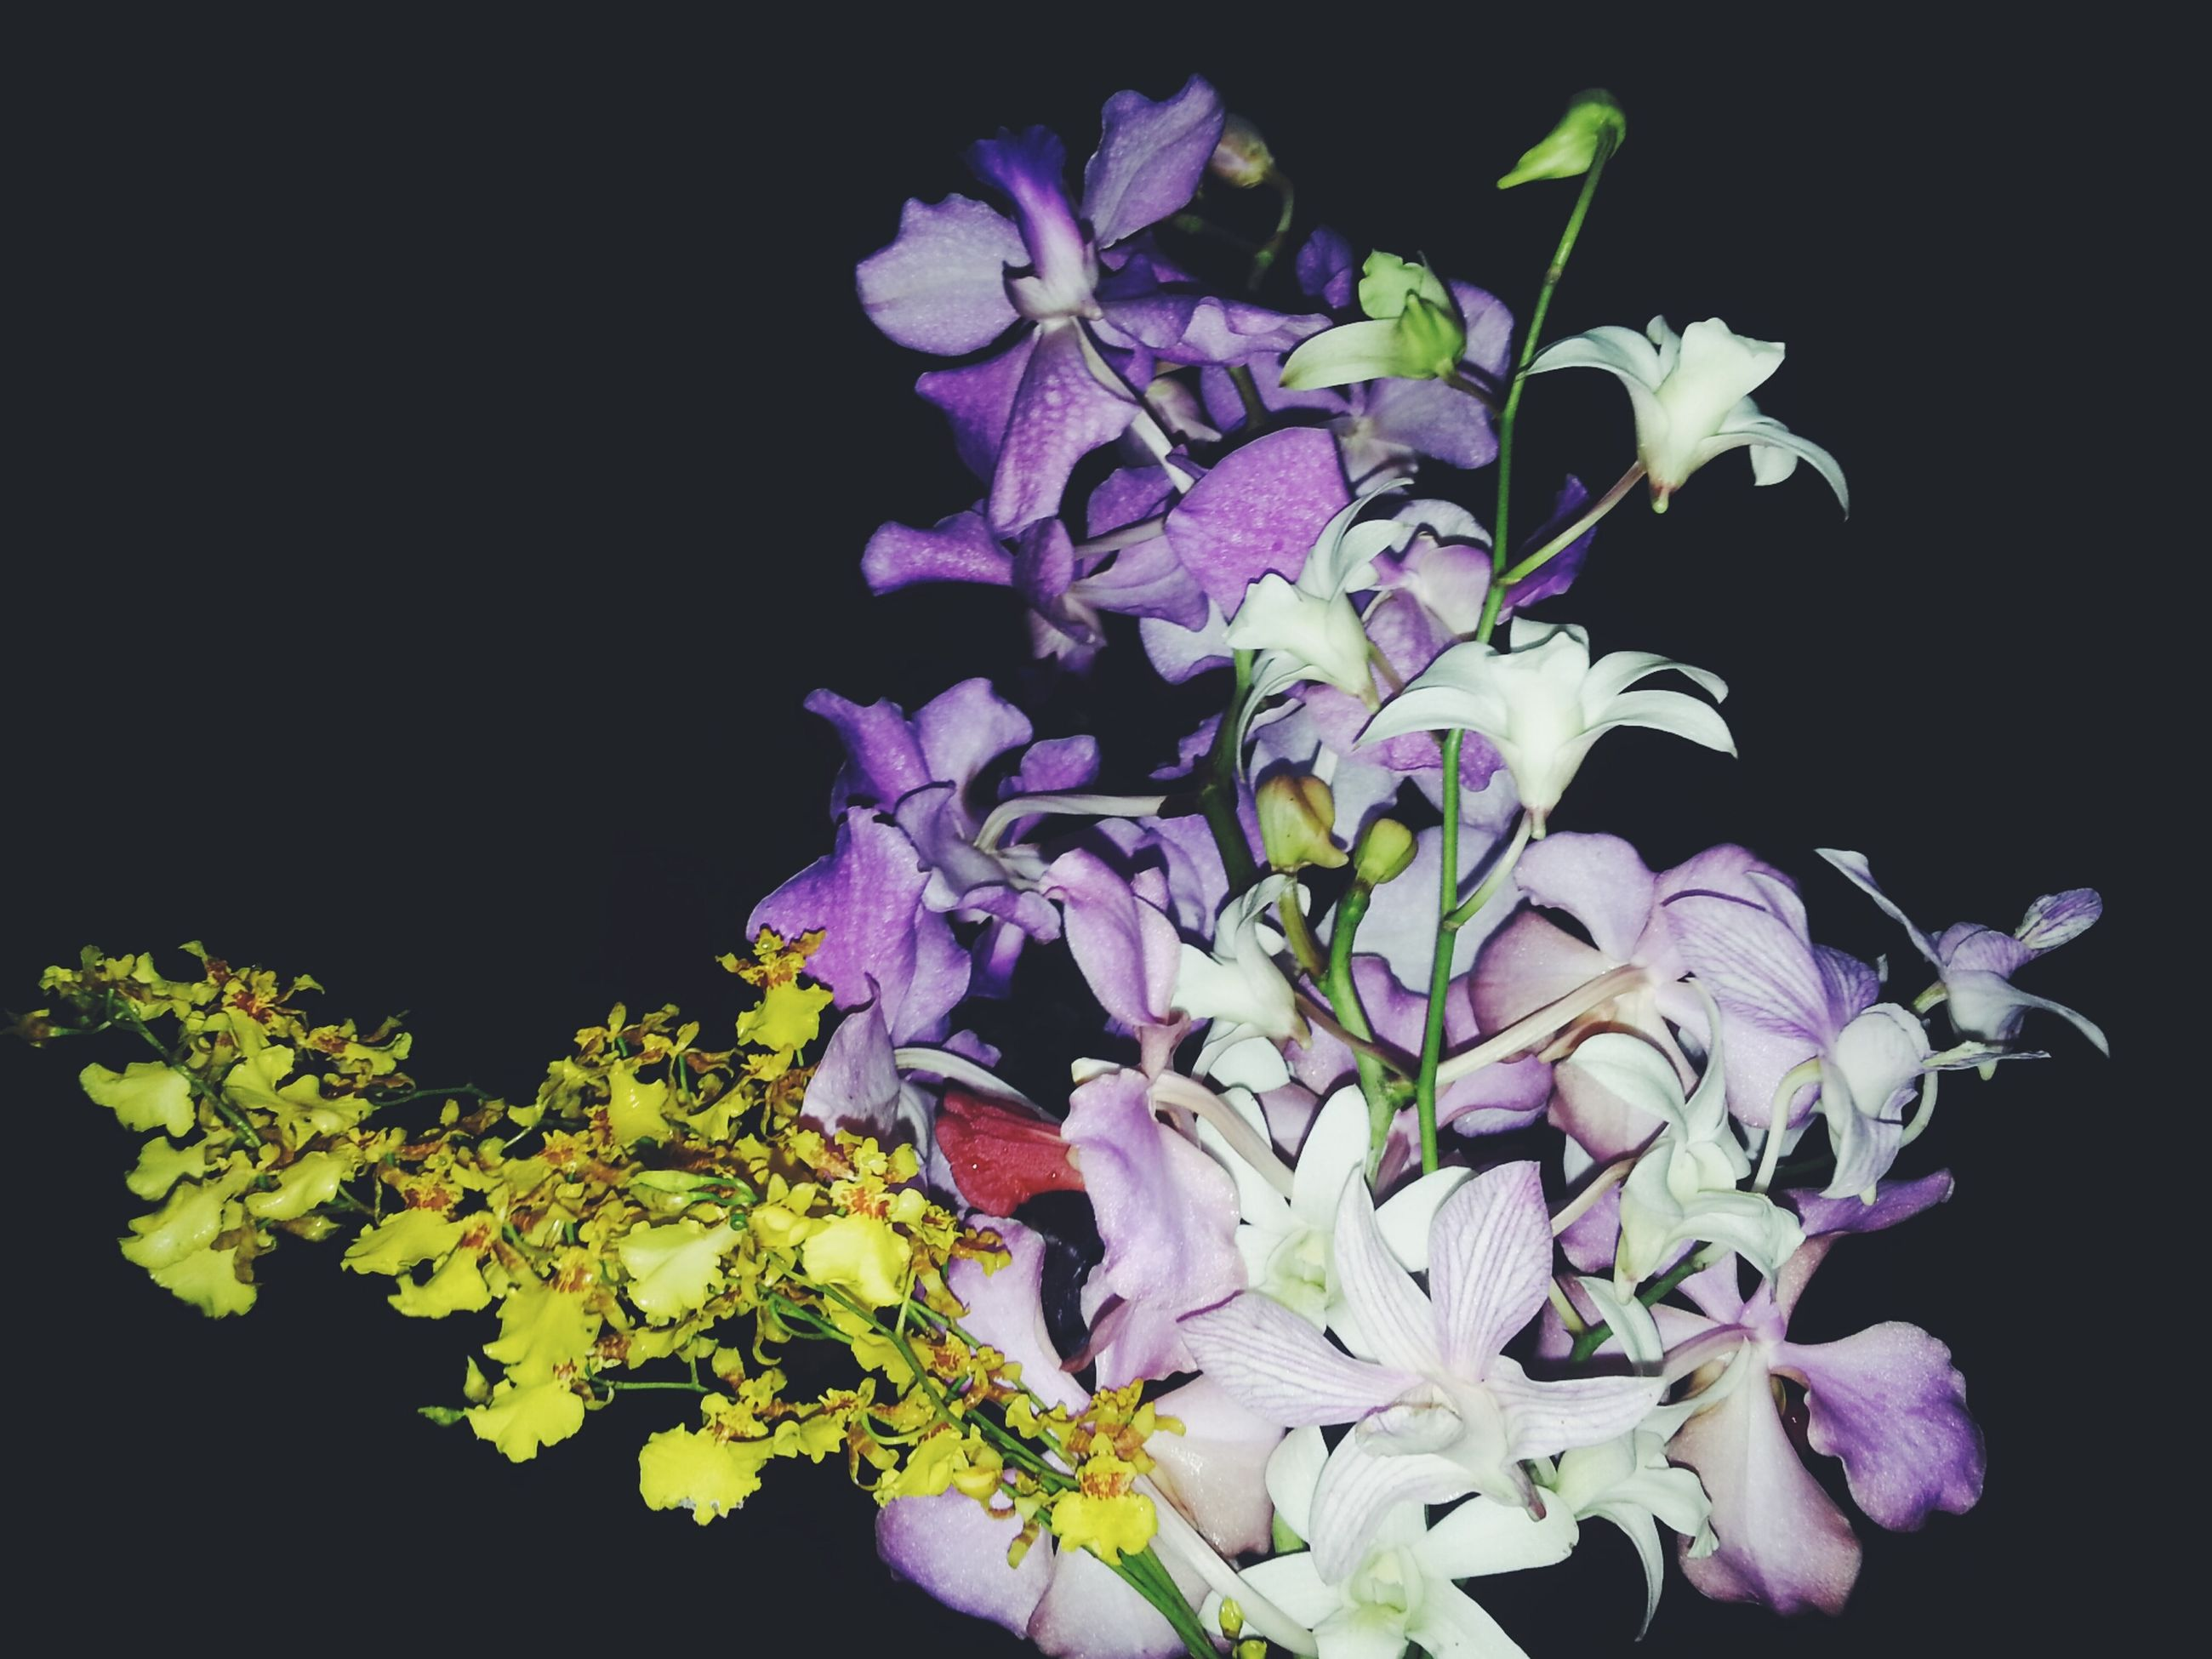 flower, freshness, petal, fragility, growth, beauty in nature, flower head, black background, studio shot, close-up, nature, purple, plant, blooming, night, in bloom, blossom, copy space, leaf, stem